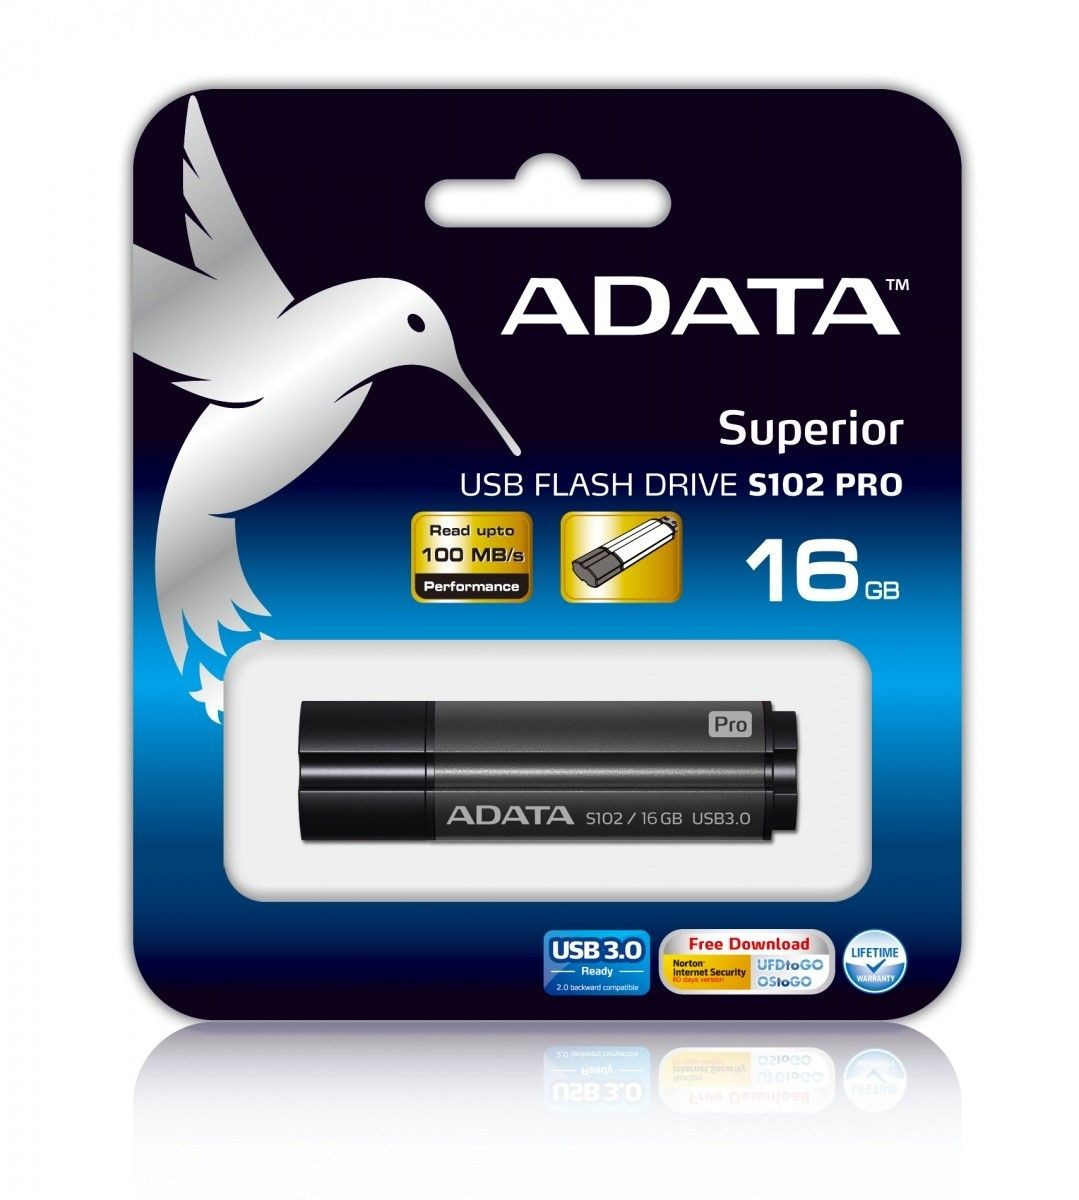 A-Data pamięć USB S102 PRO 16GB USB 3.0 Titanium Gray (Write/Read 25/90MB/s )